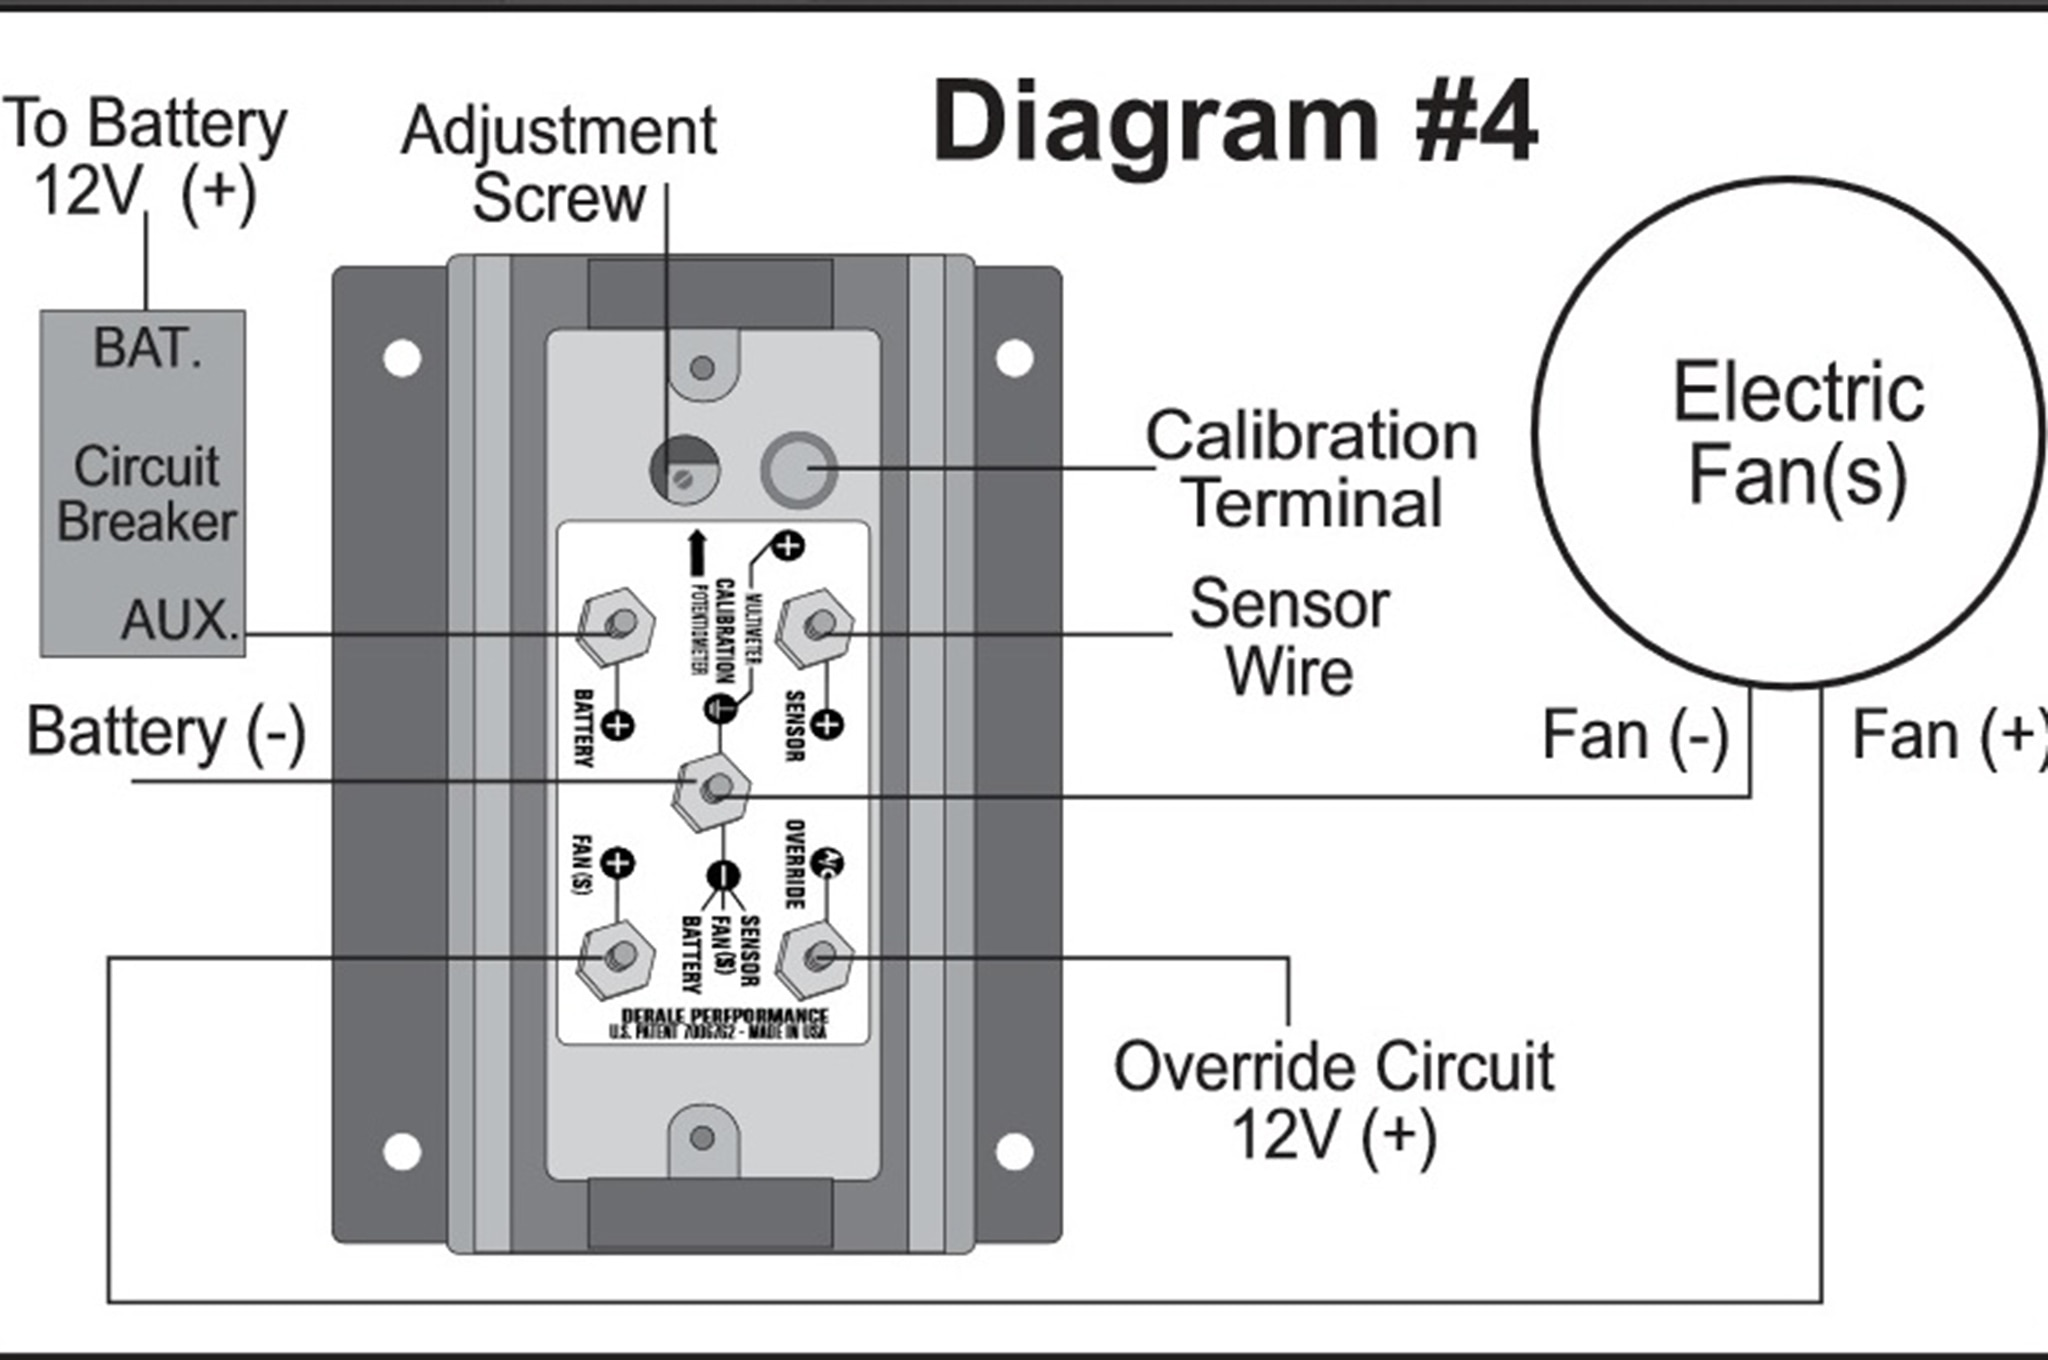 hayden electric fan controller wiring diagram schematic. Black Bedroom Furniture Sets. Home Design Ideas